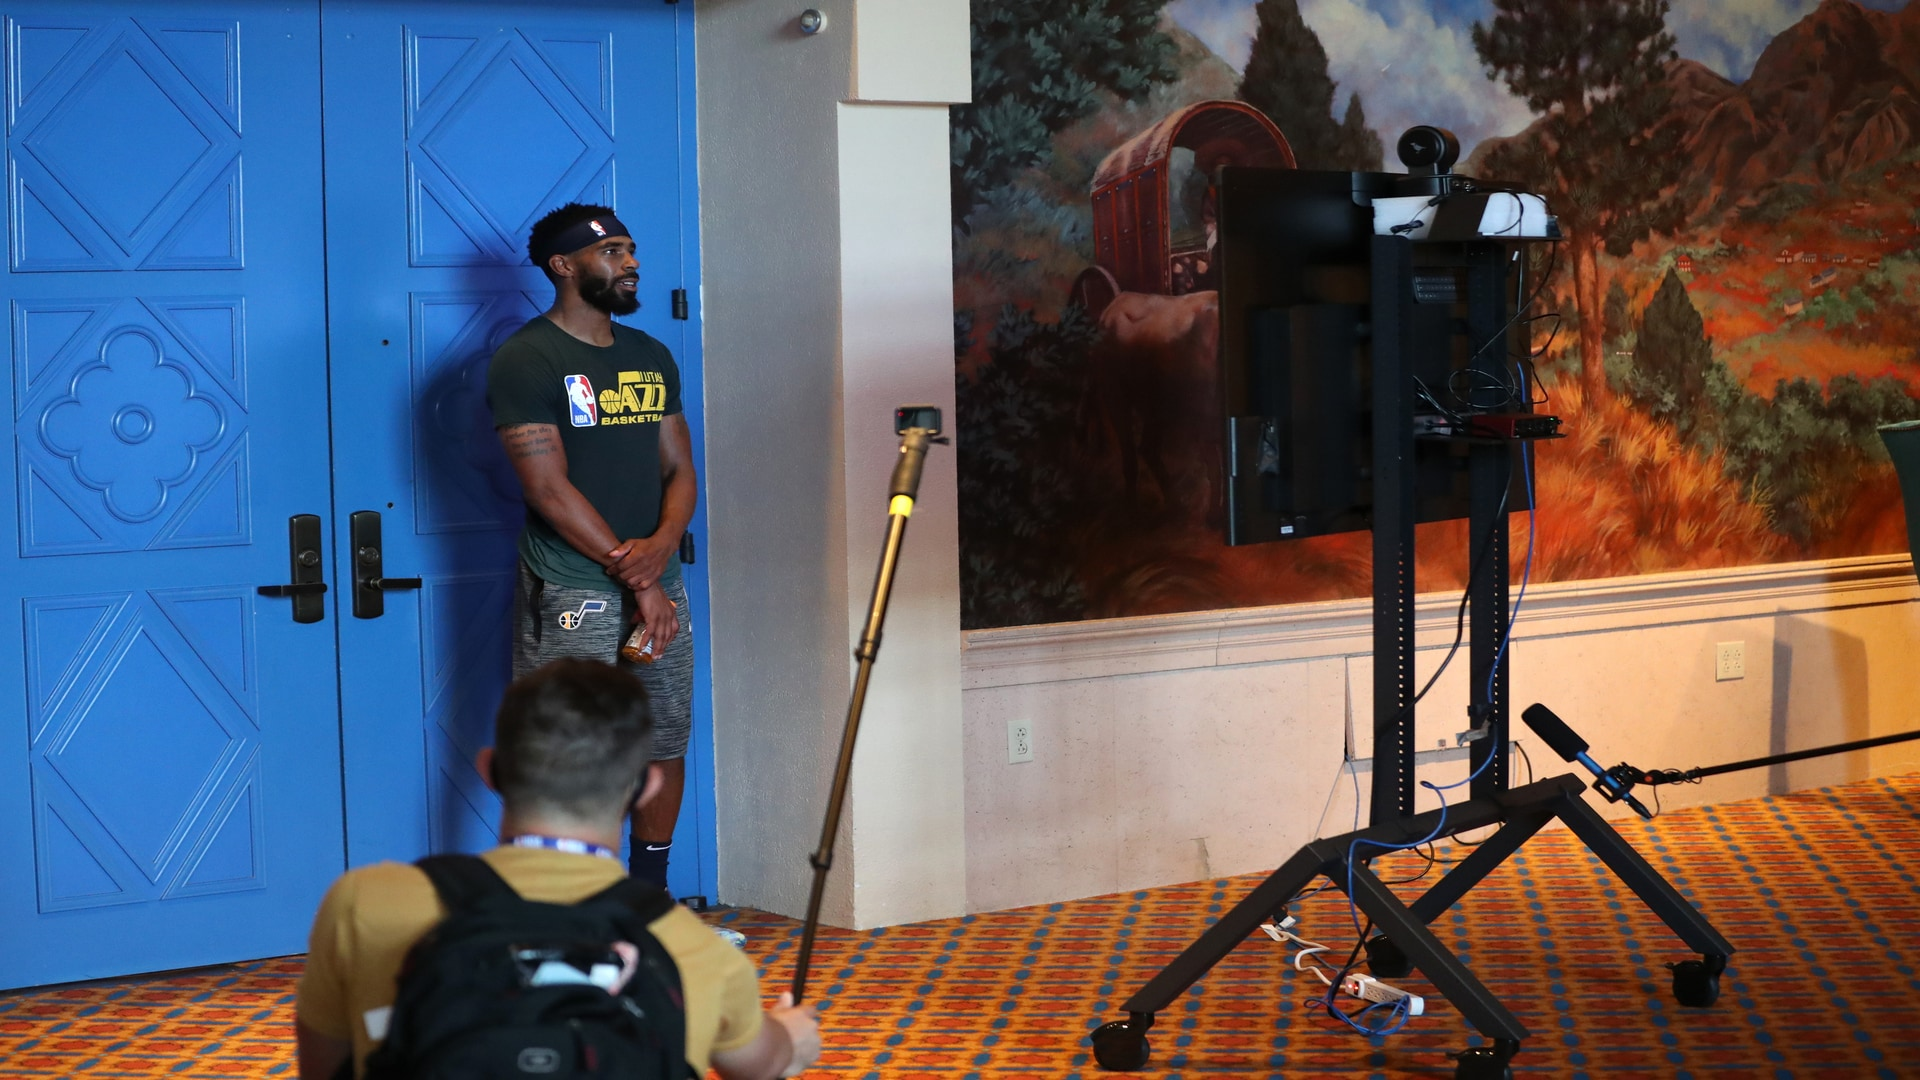 First media availability from Orlando - Mike Conley, Coach Quin Snyder & Rudy Gobert